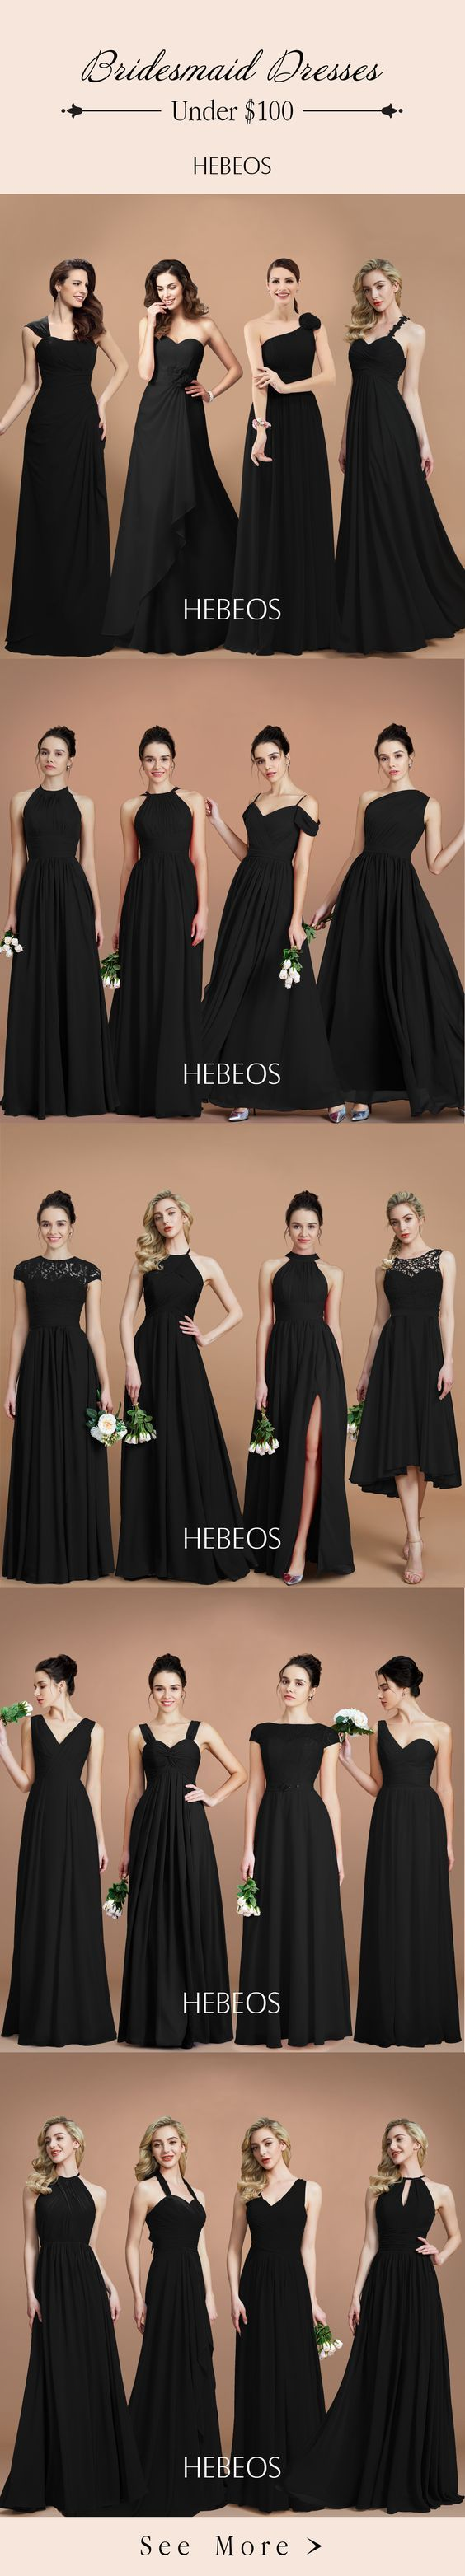 23 melhores imagens de wish list no pinterest botas e sapatos beautiful fabrics and nearly 200 color options let you mix and match bridesmaid styles from all hebeos collections buy your cheap bridesmaid fandeluxe Image collections